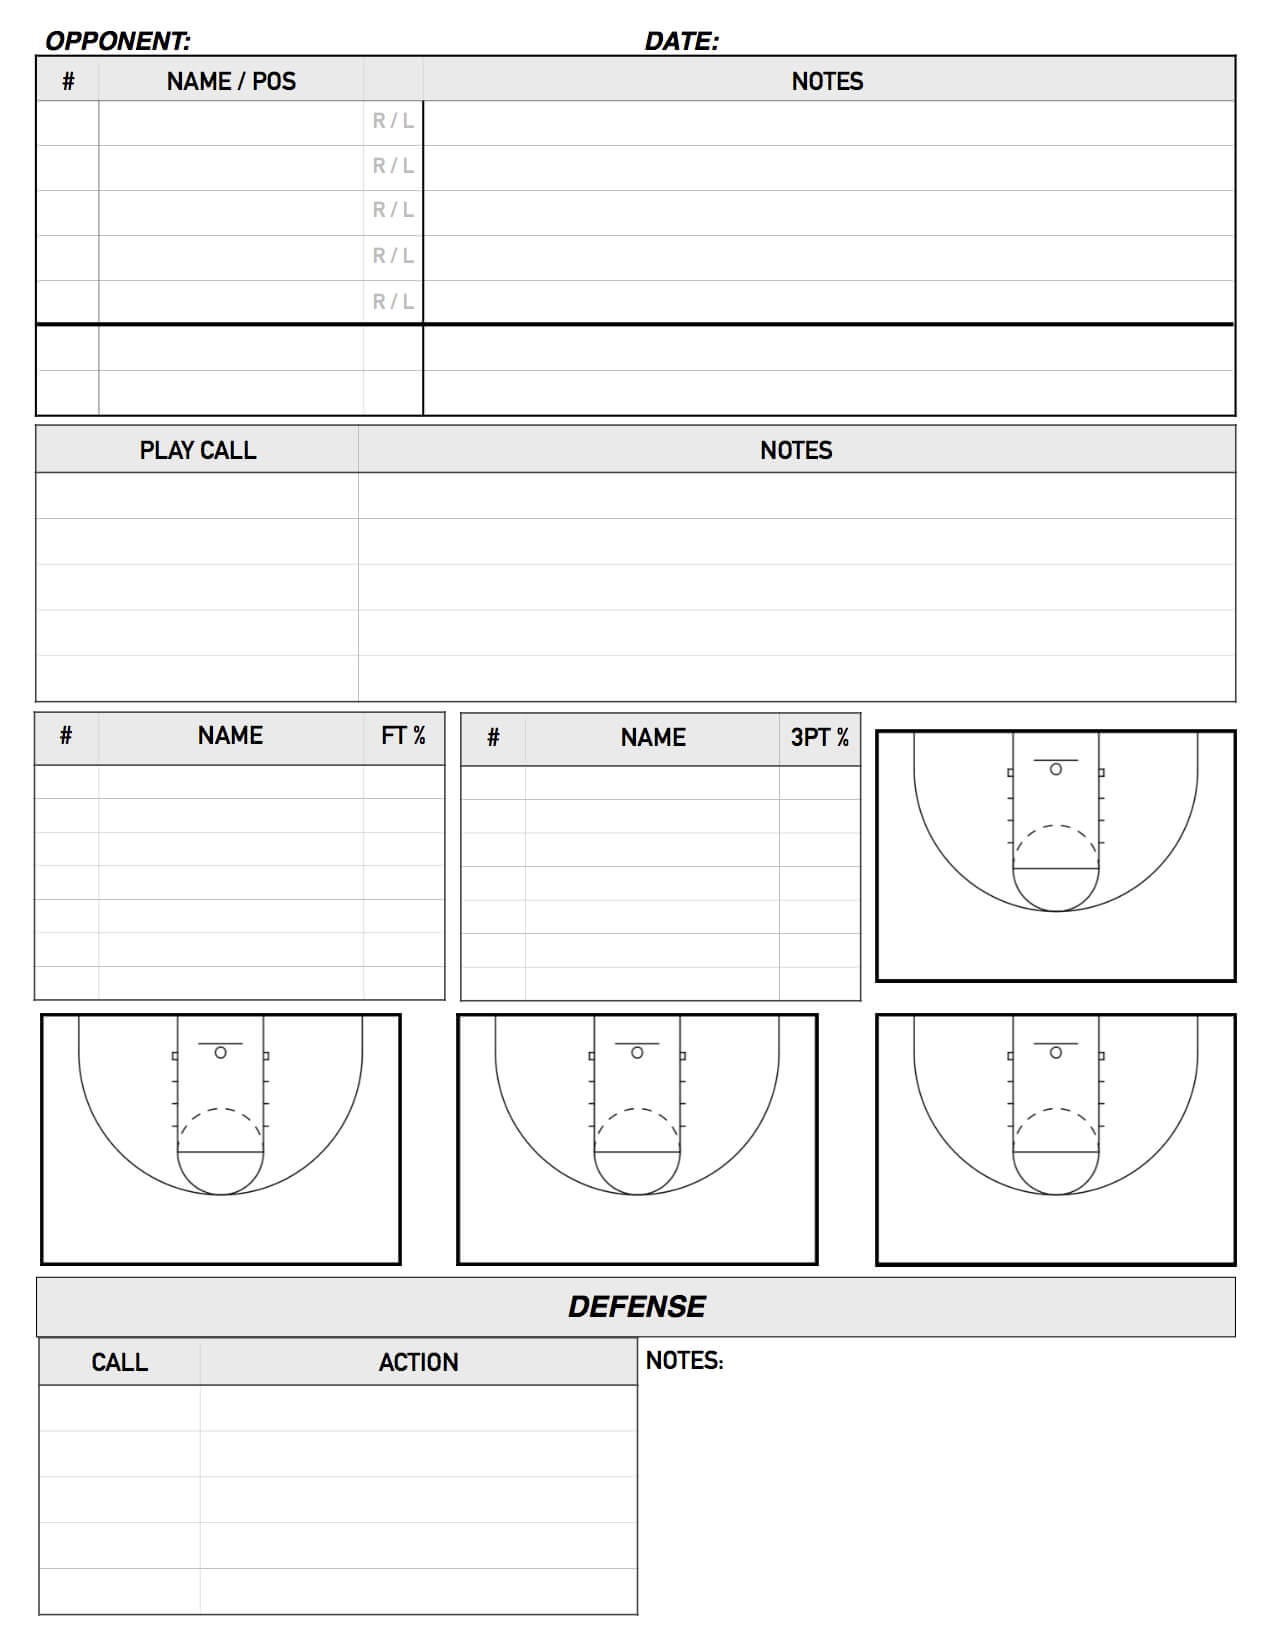 Scouting From The Bench | Basketball | College Basketball pertaining to Scouting Report Basketball Template